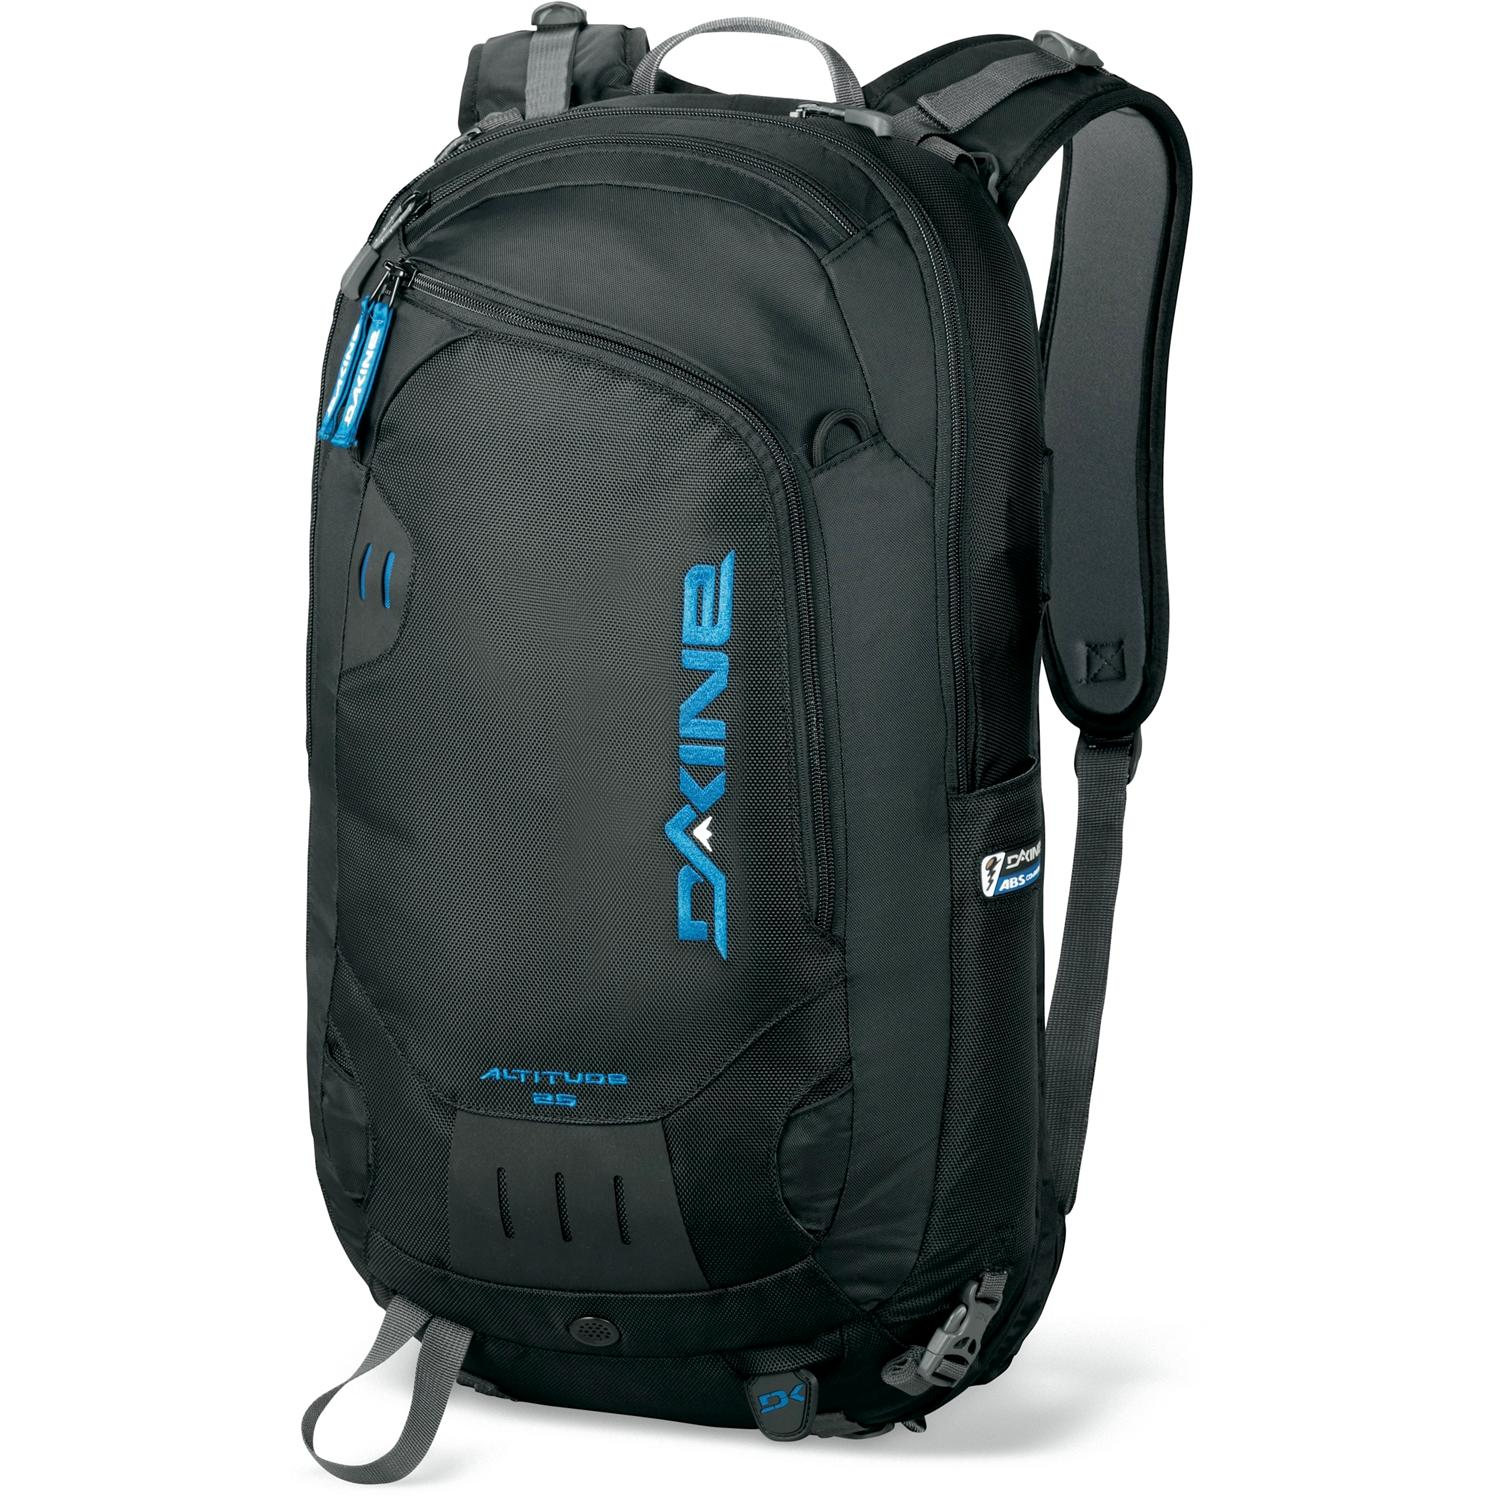 DaKine Altitude ABS 25L Backpack (Airbag not included ...